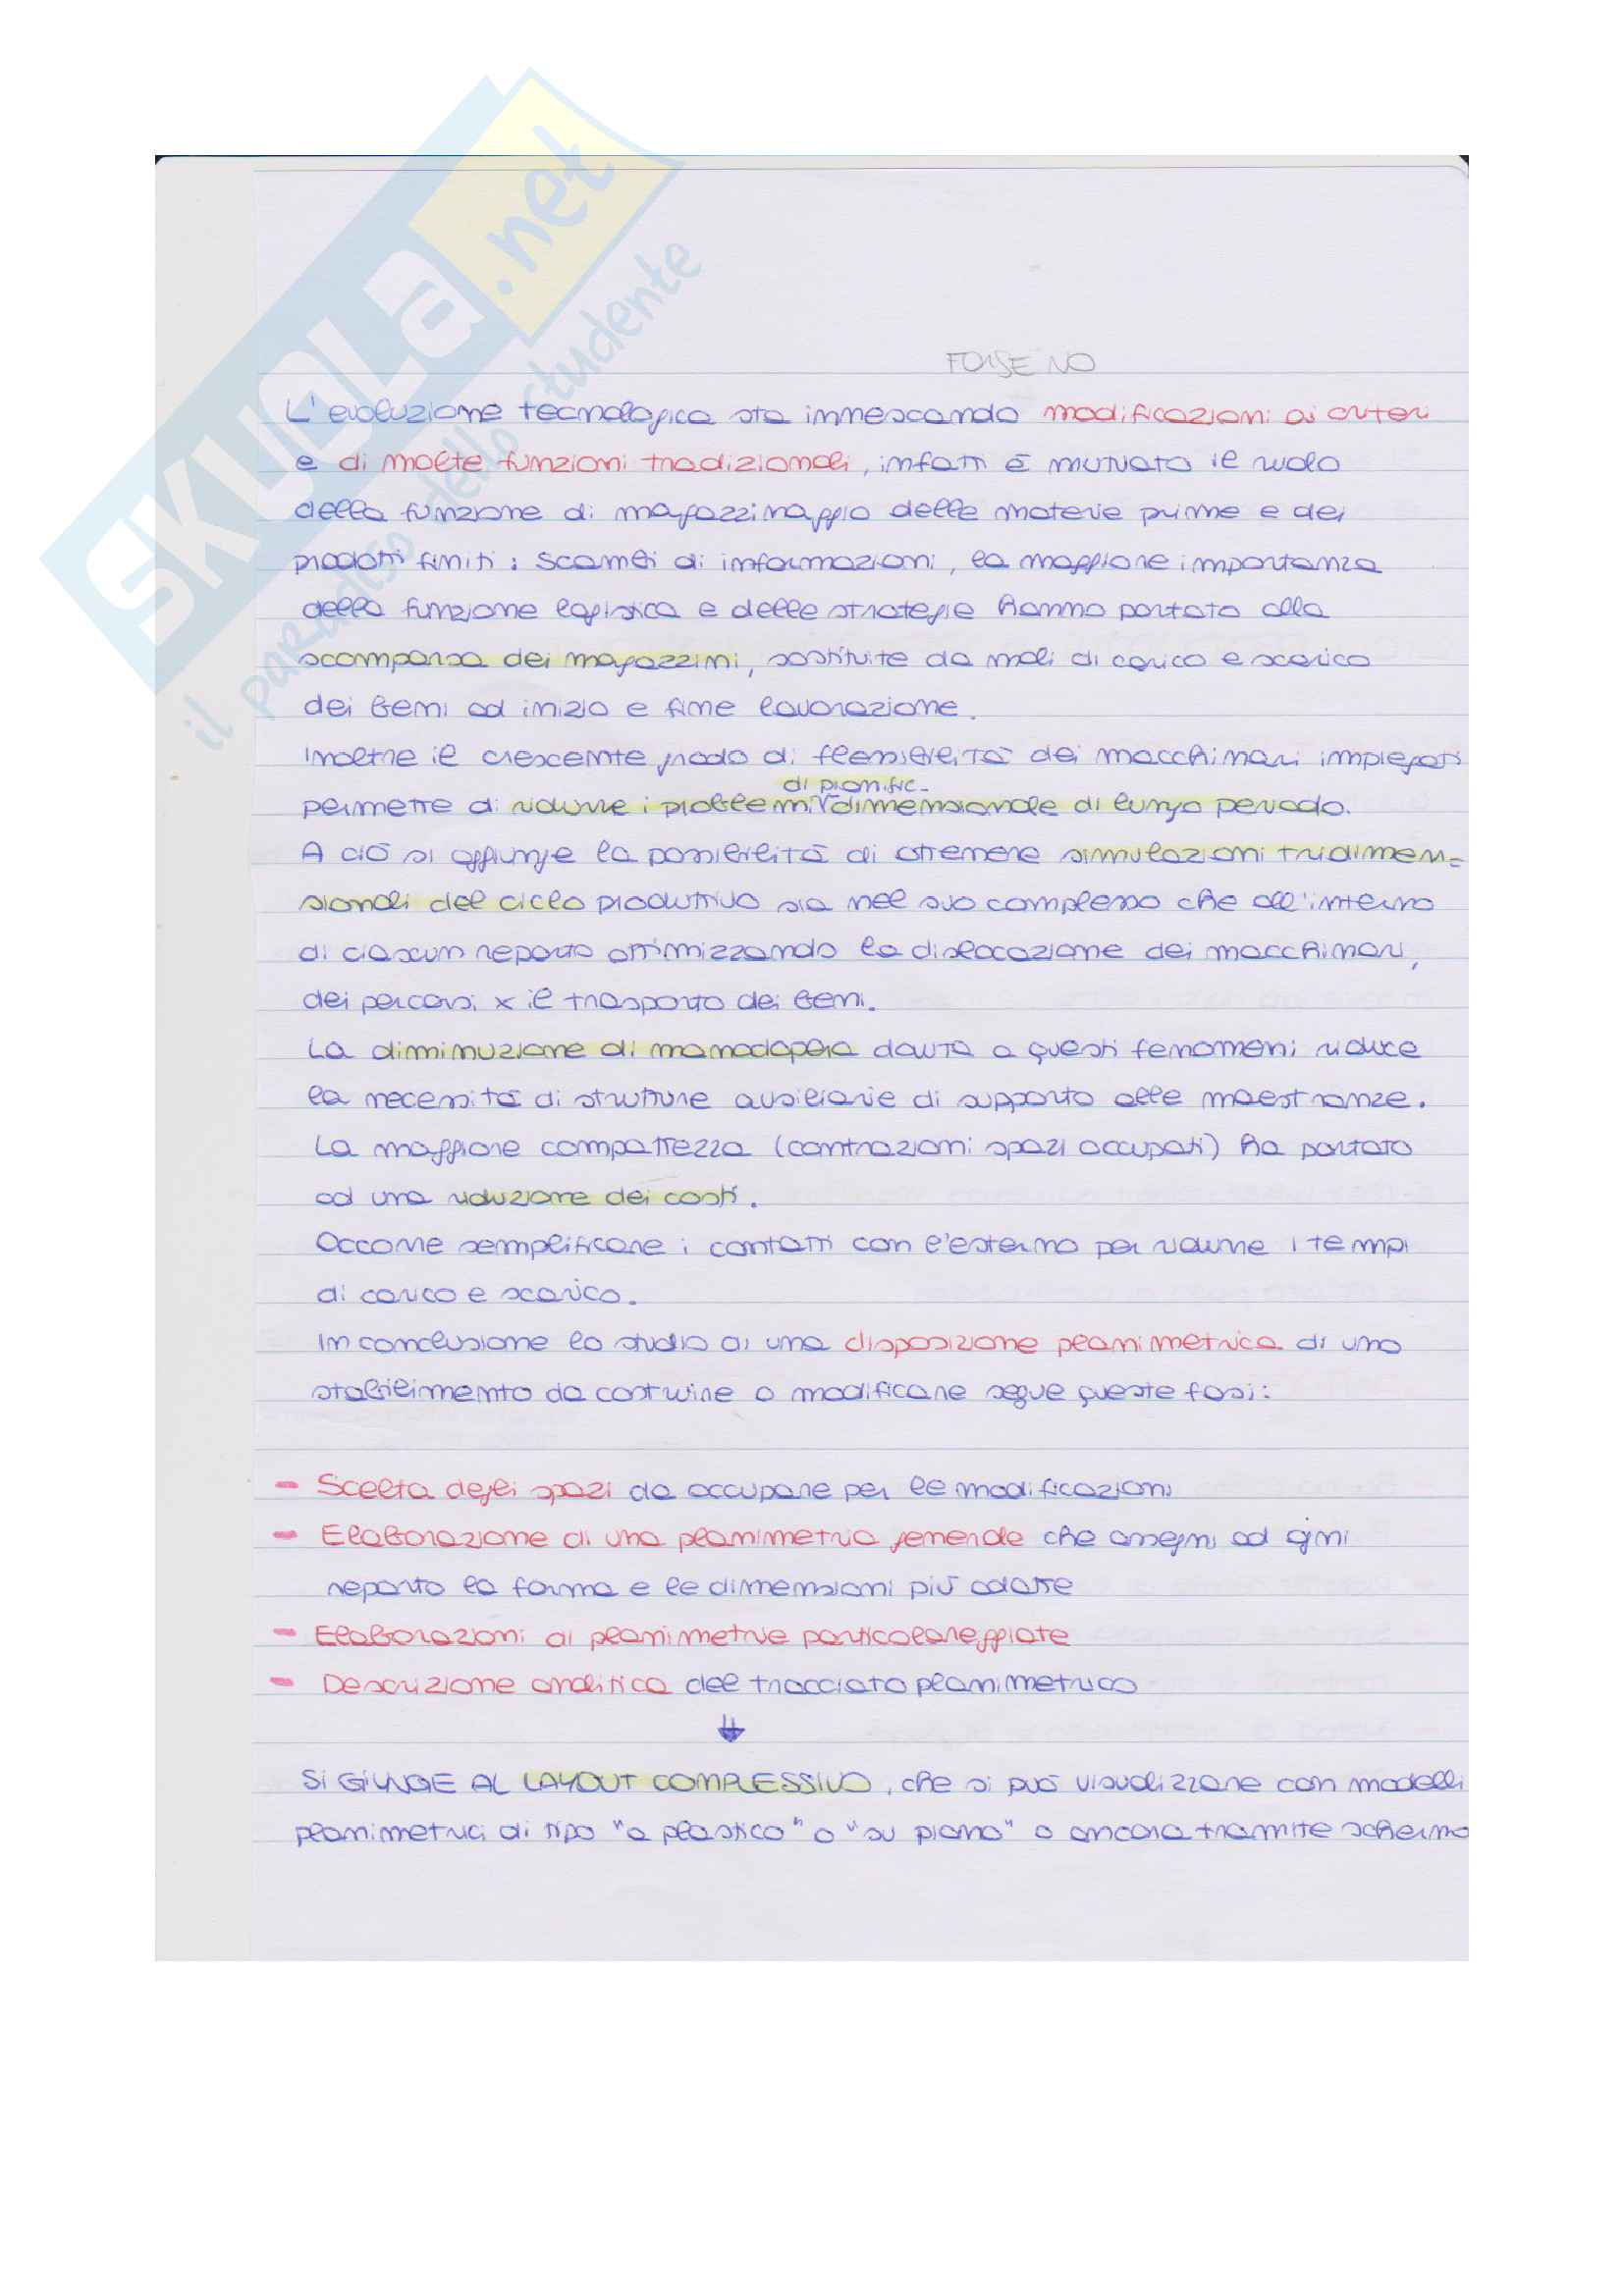 Appunti Operation Management Pag. 16